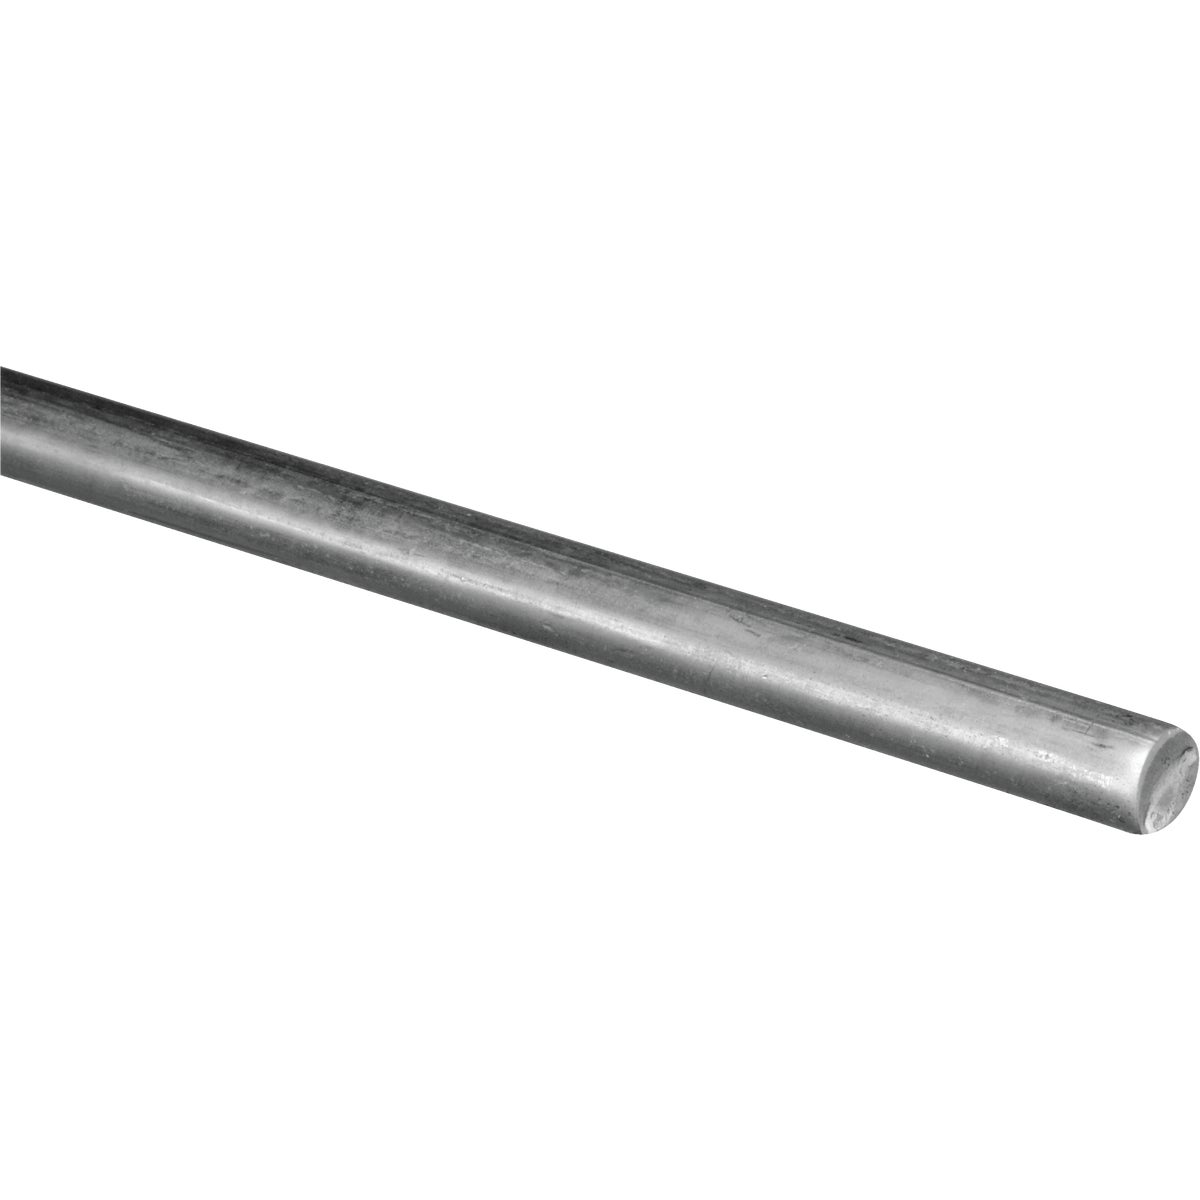 1/2X3' ROUND STEEL ROD - N179804 by National Mfg Co